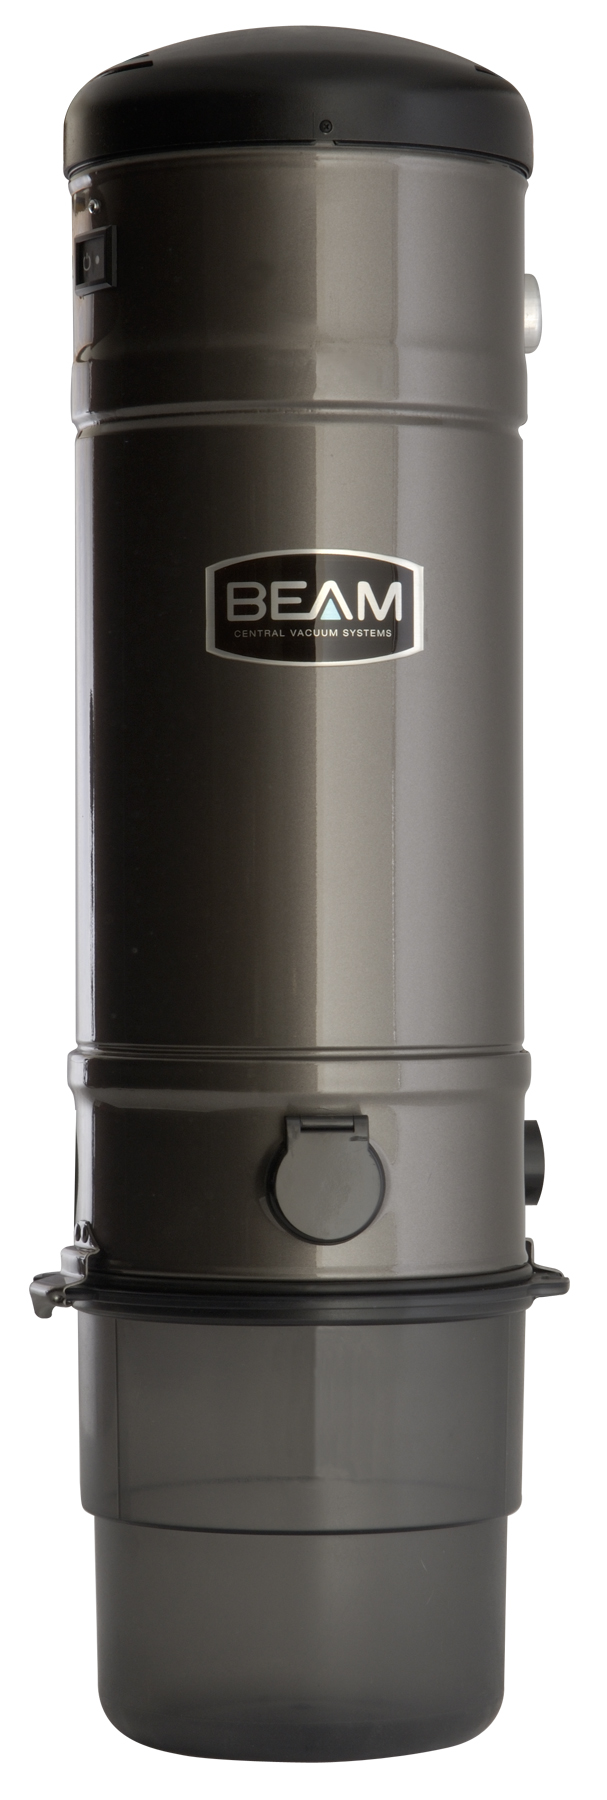 Beam Serenity 375 Power Unit